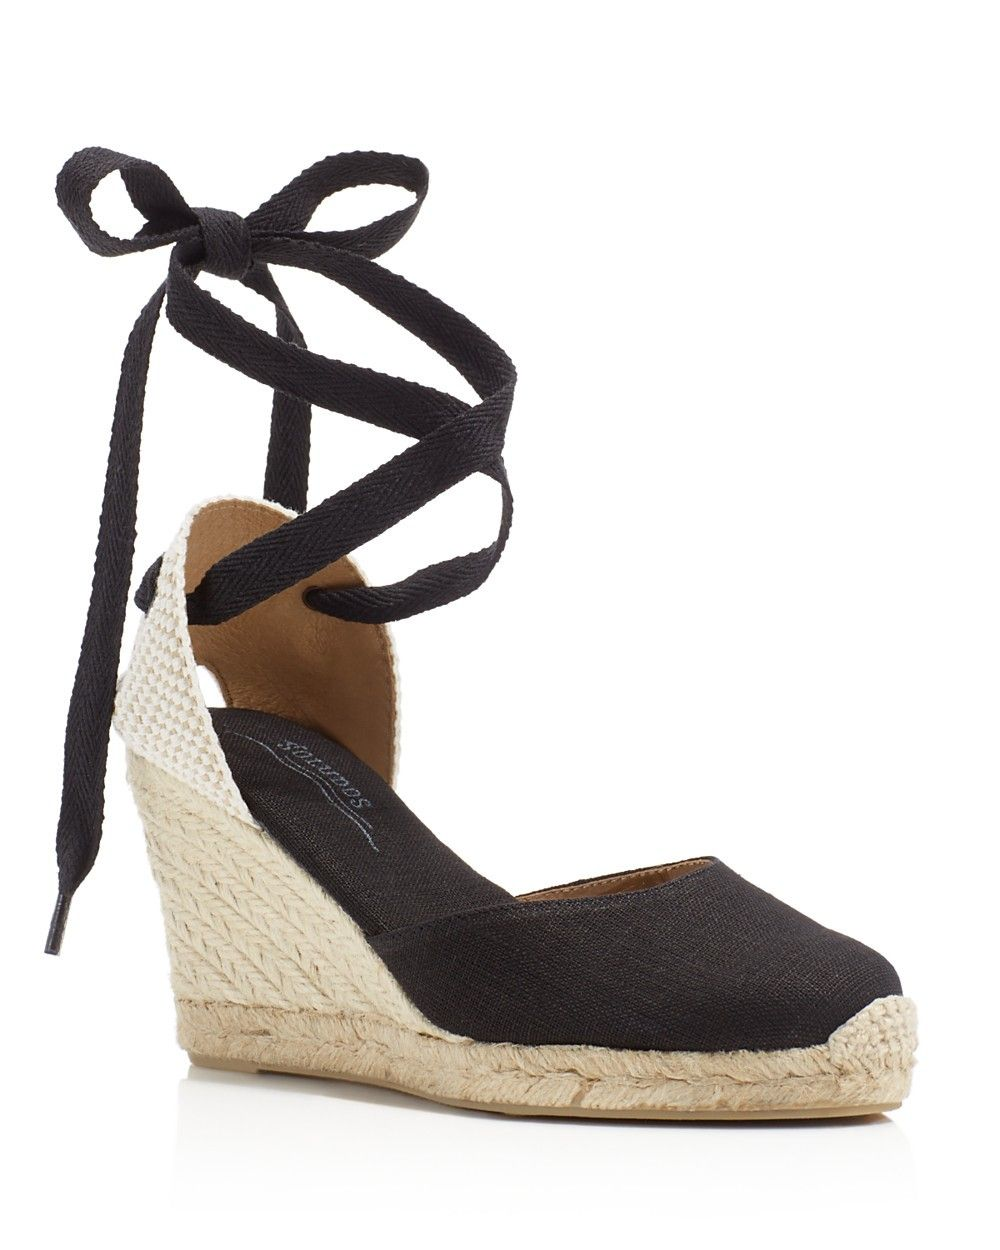 de5cd42b691 SOLUDOS Soludos Tall Lace Up Espadrille Wedge Sandals.  soludos  shoes  all